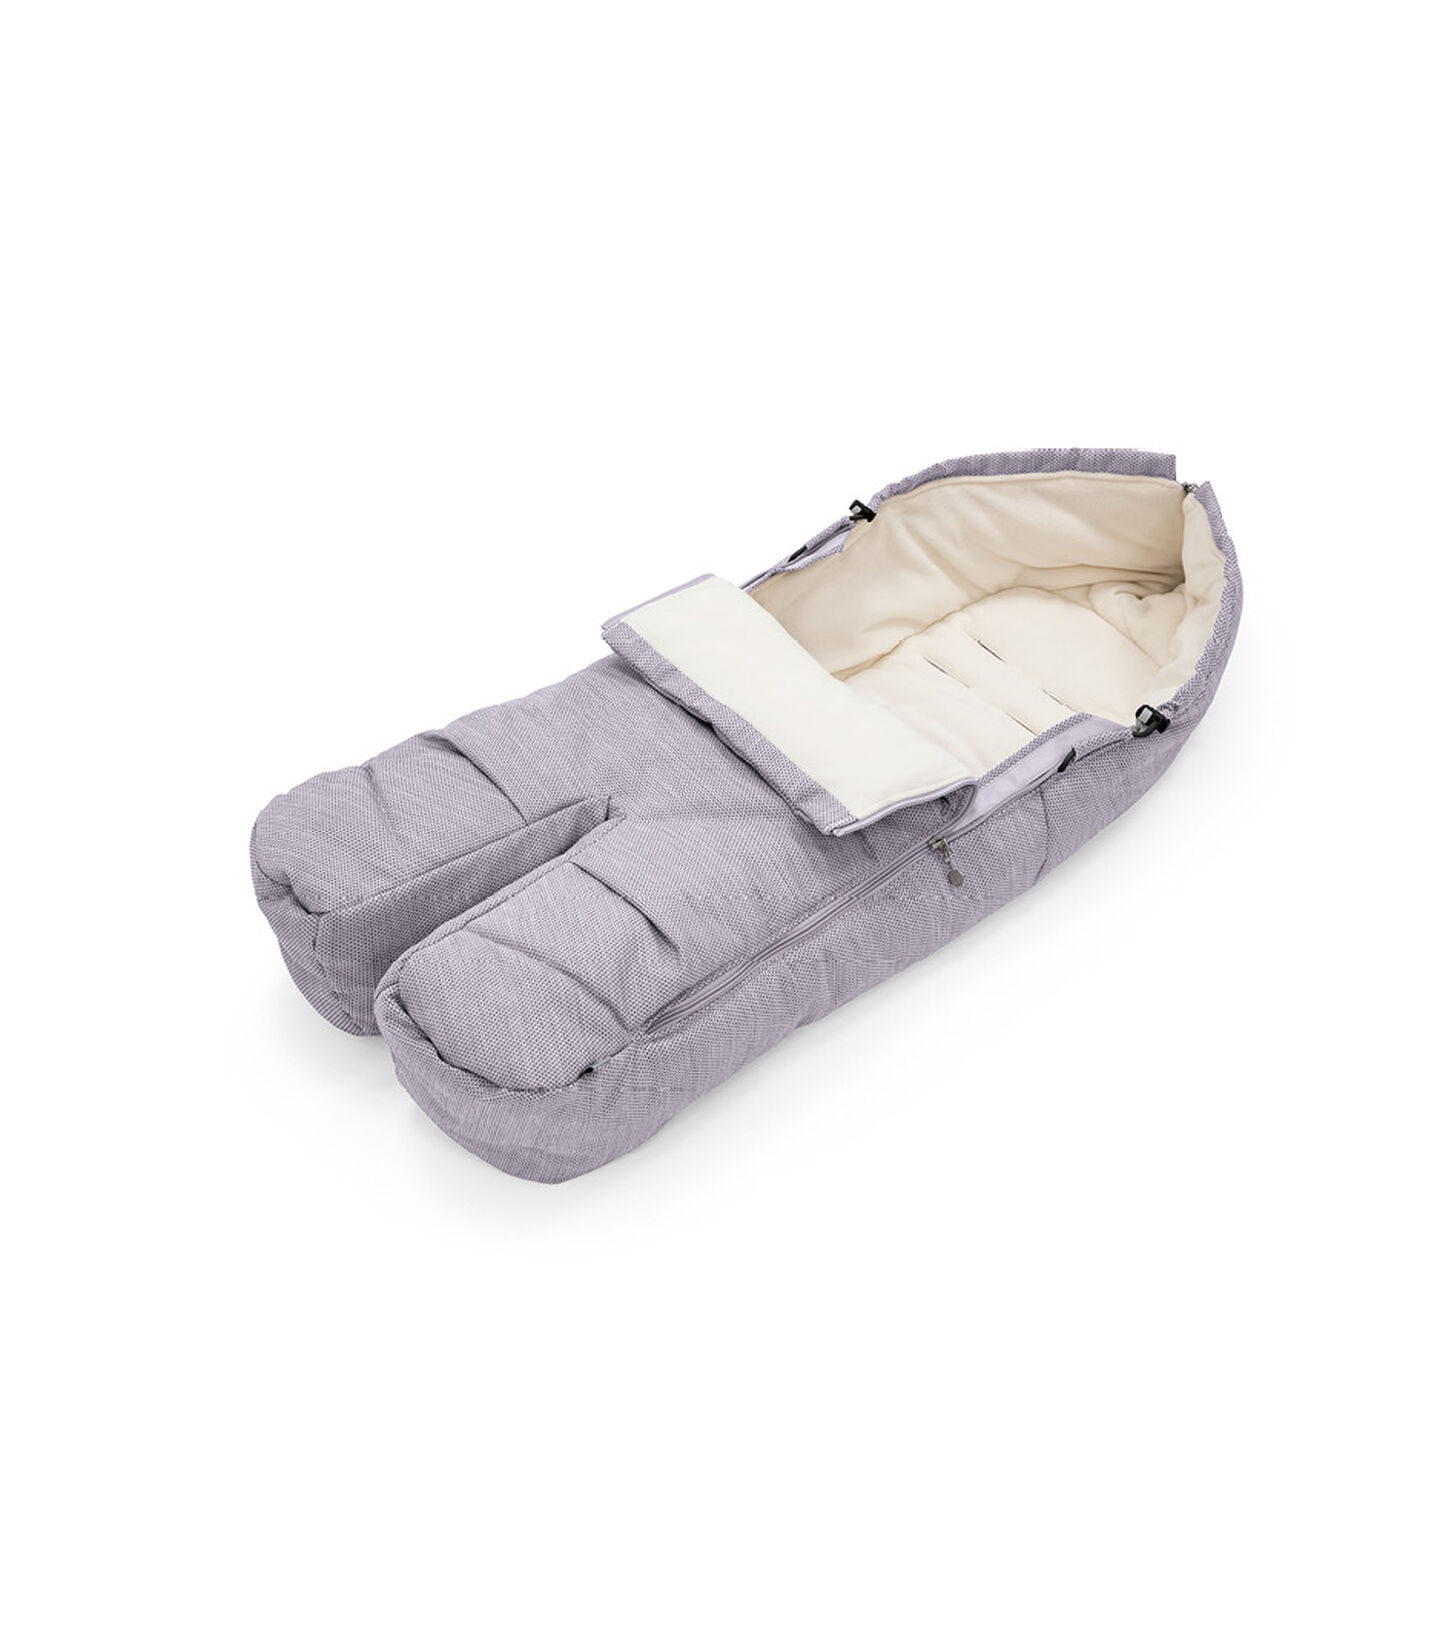 Stokke® Foot Muff, Brushed Lilac. view 2